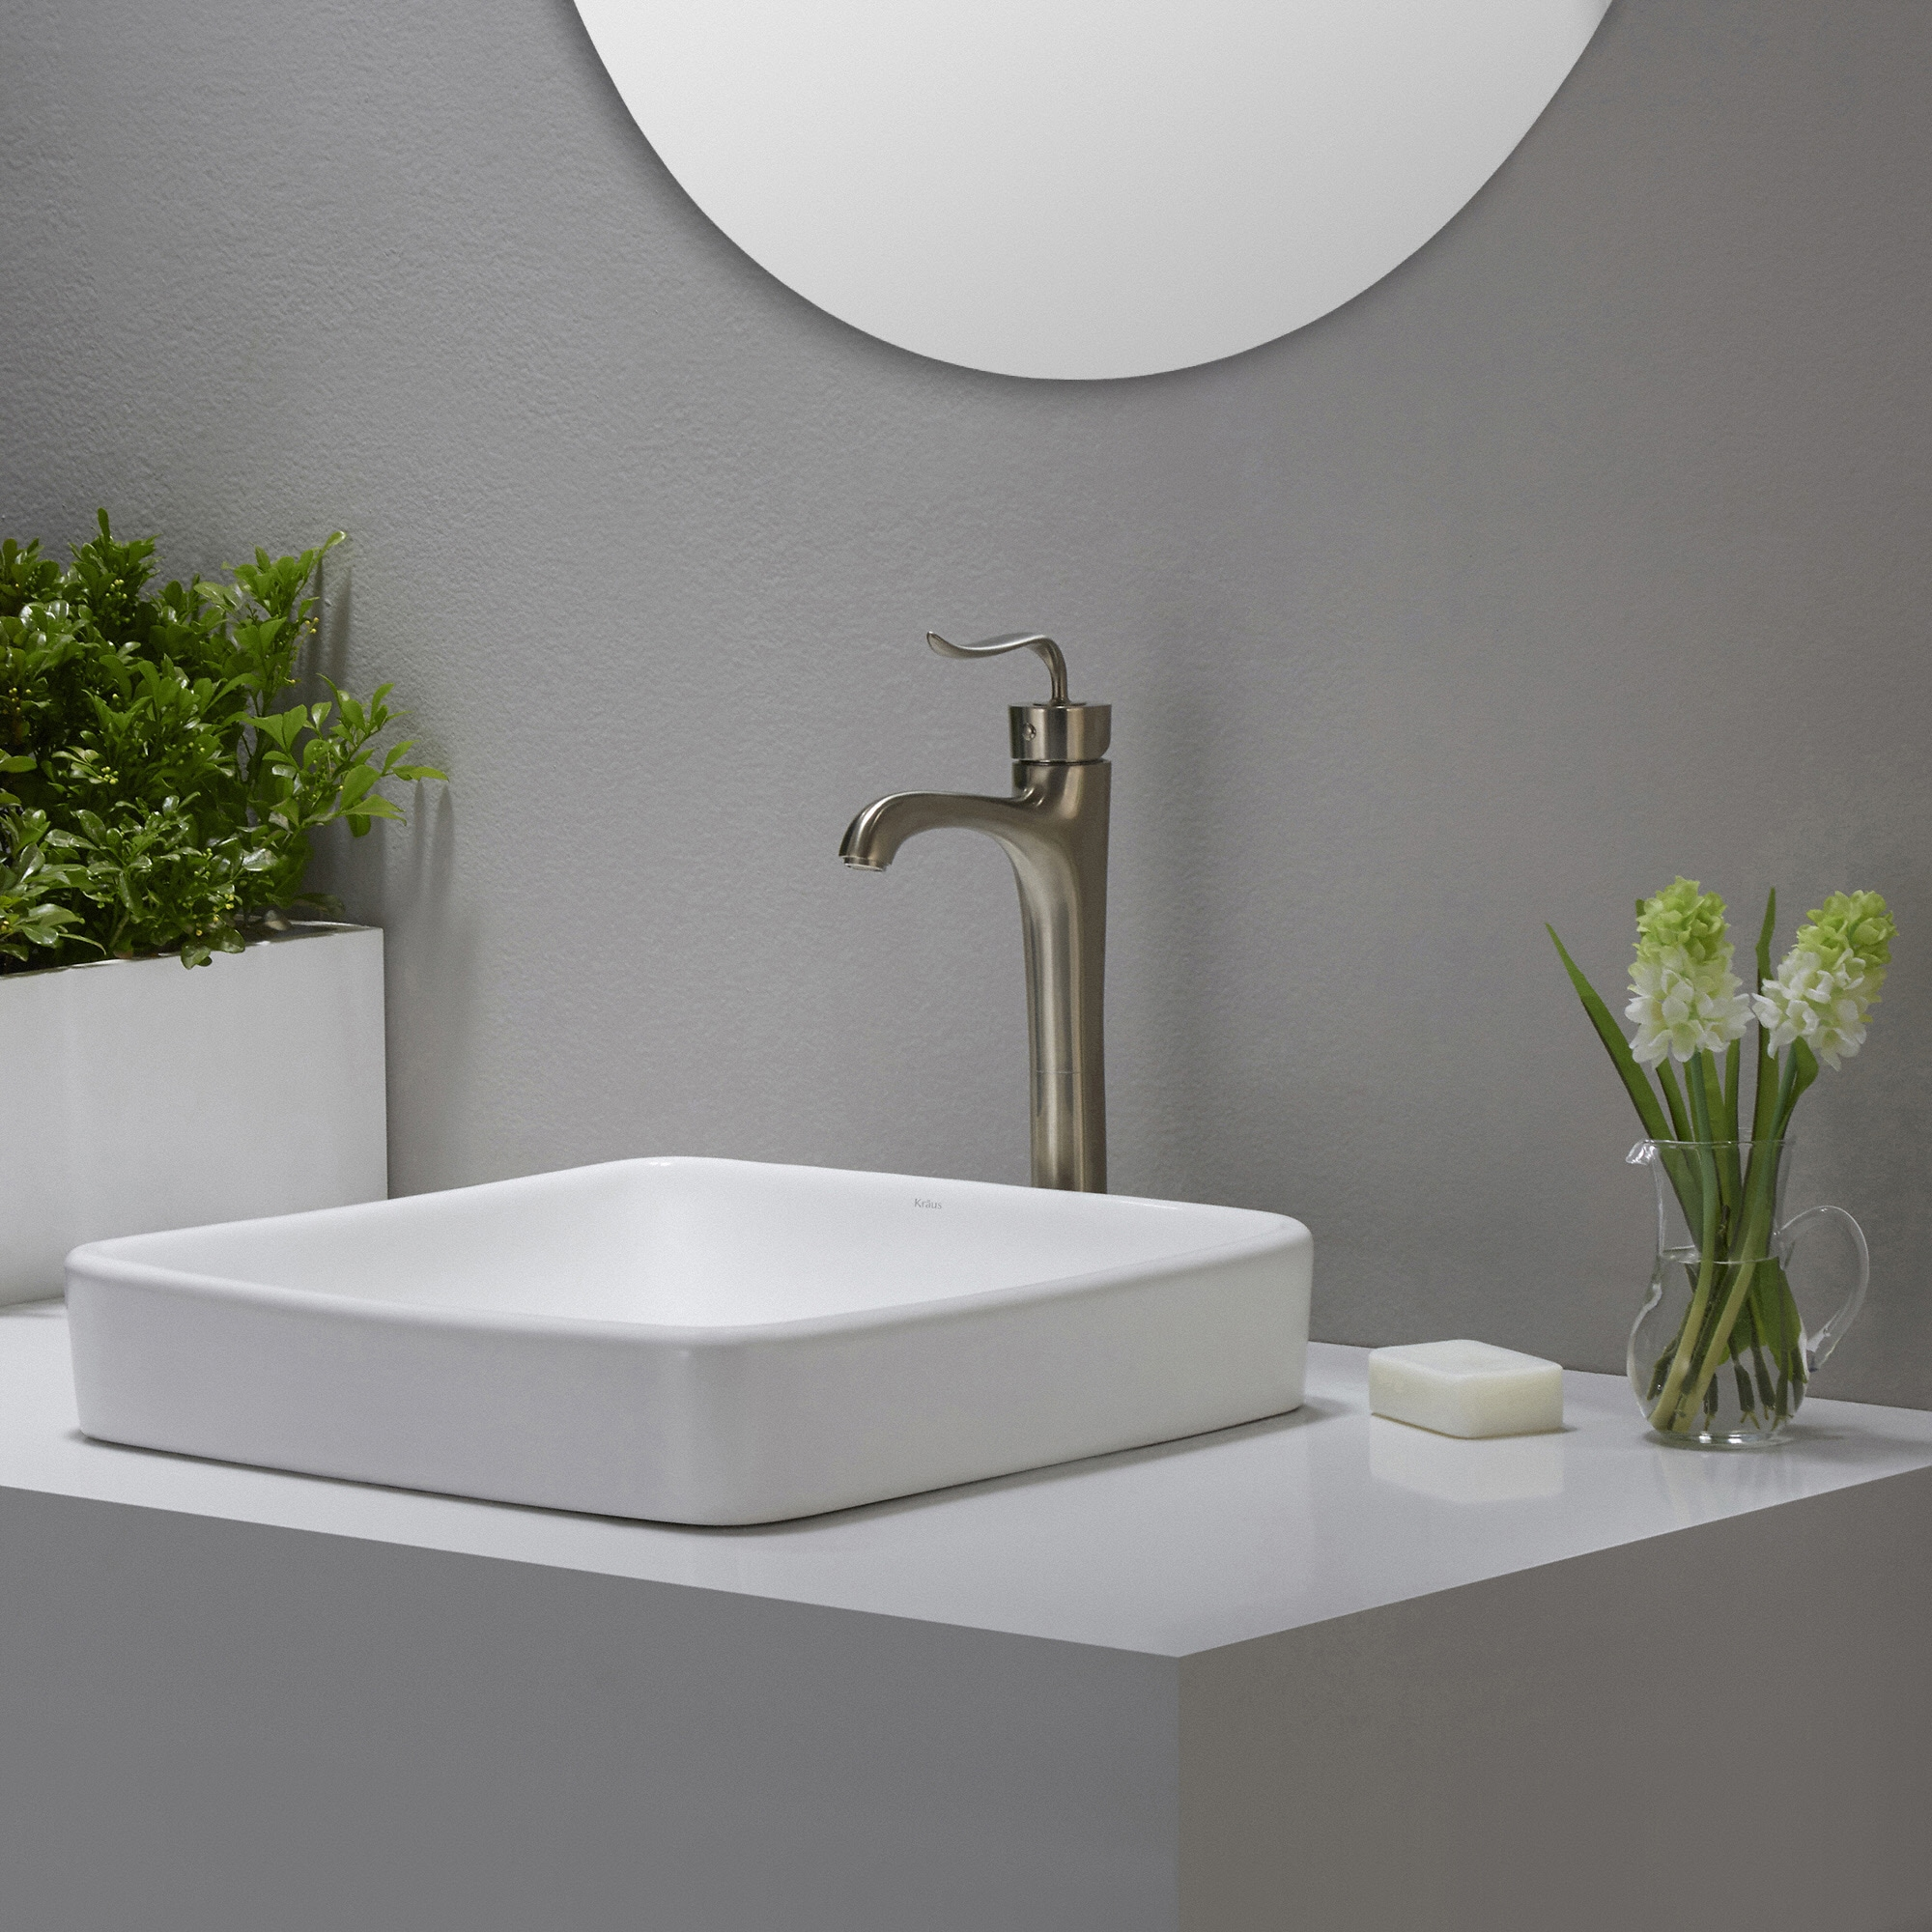 Kraus Elavo Series Square Ceramic Semi Recessed Bathroom Sink On Free Shipping Today 10482046